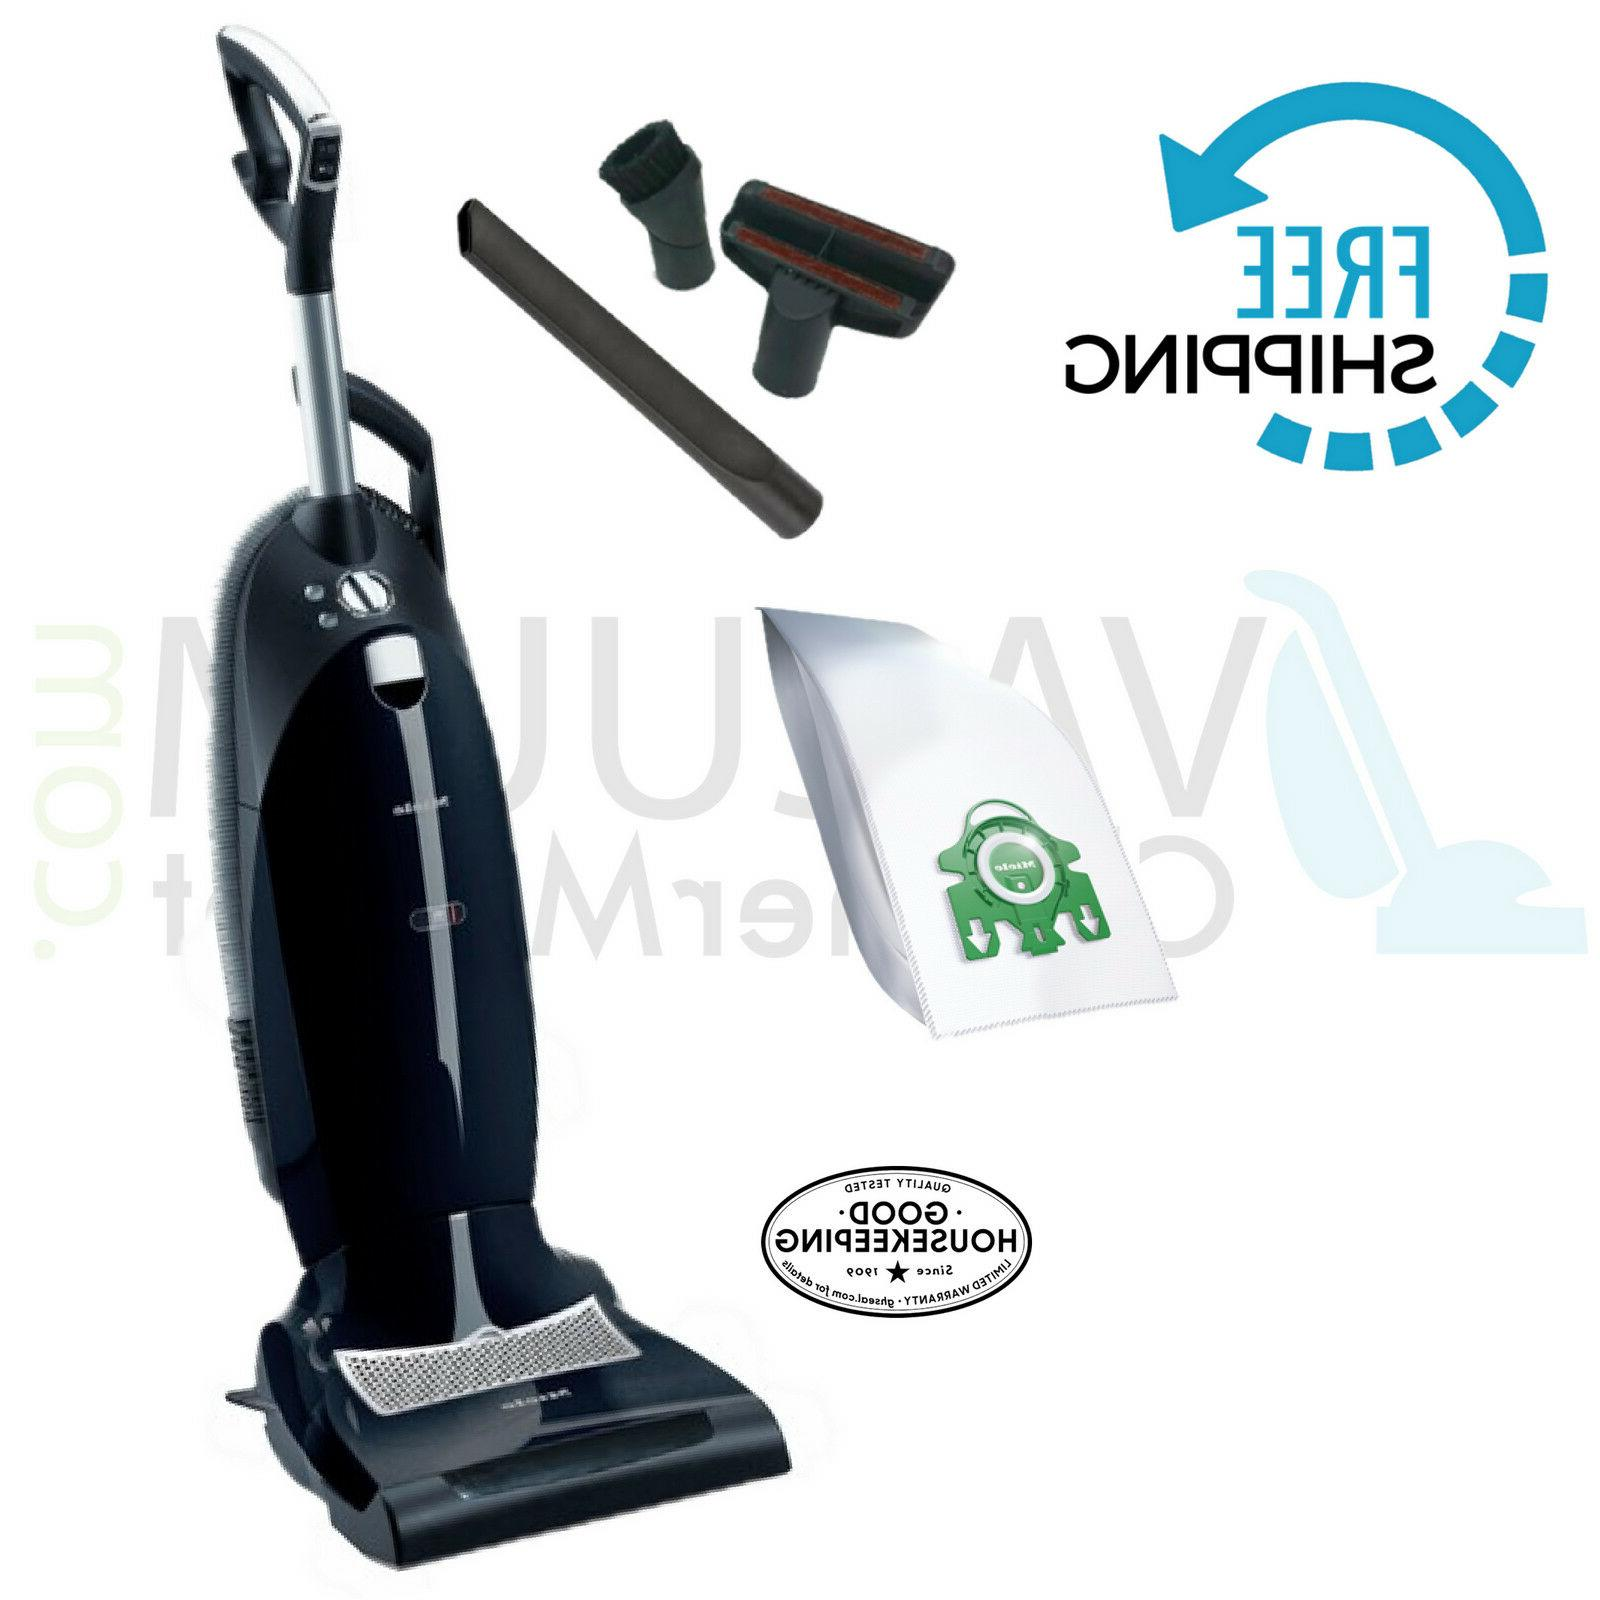 dynamic u1 maverick upright vacuum